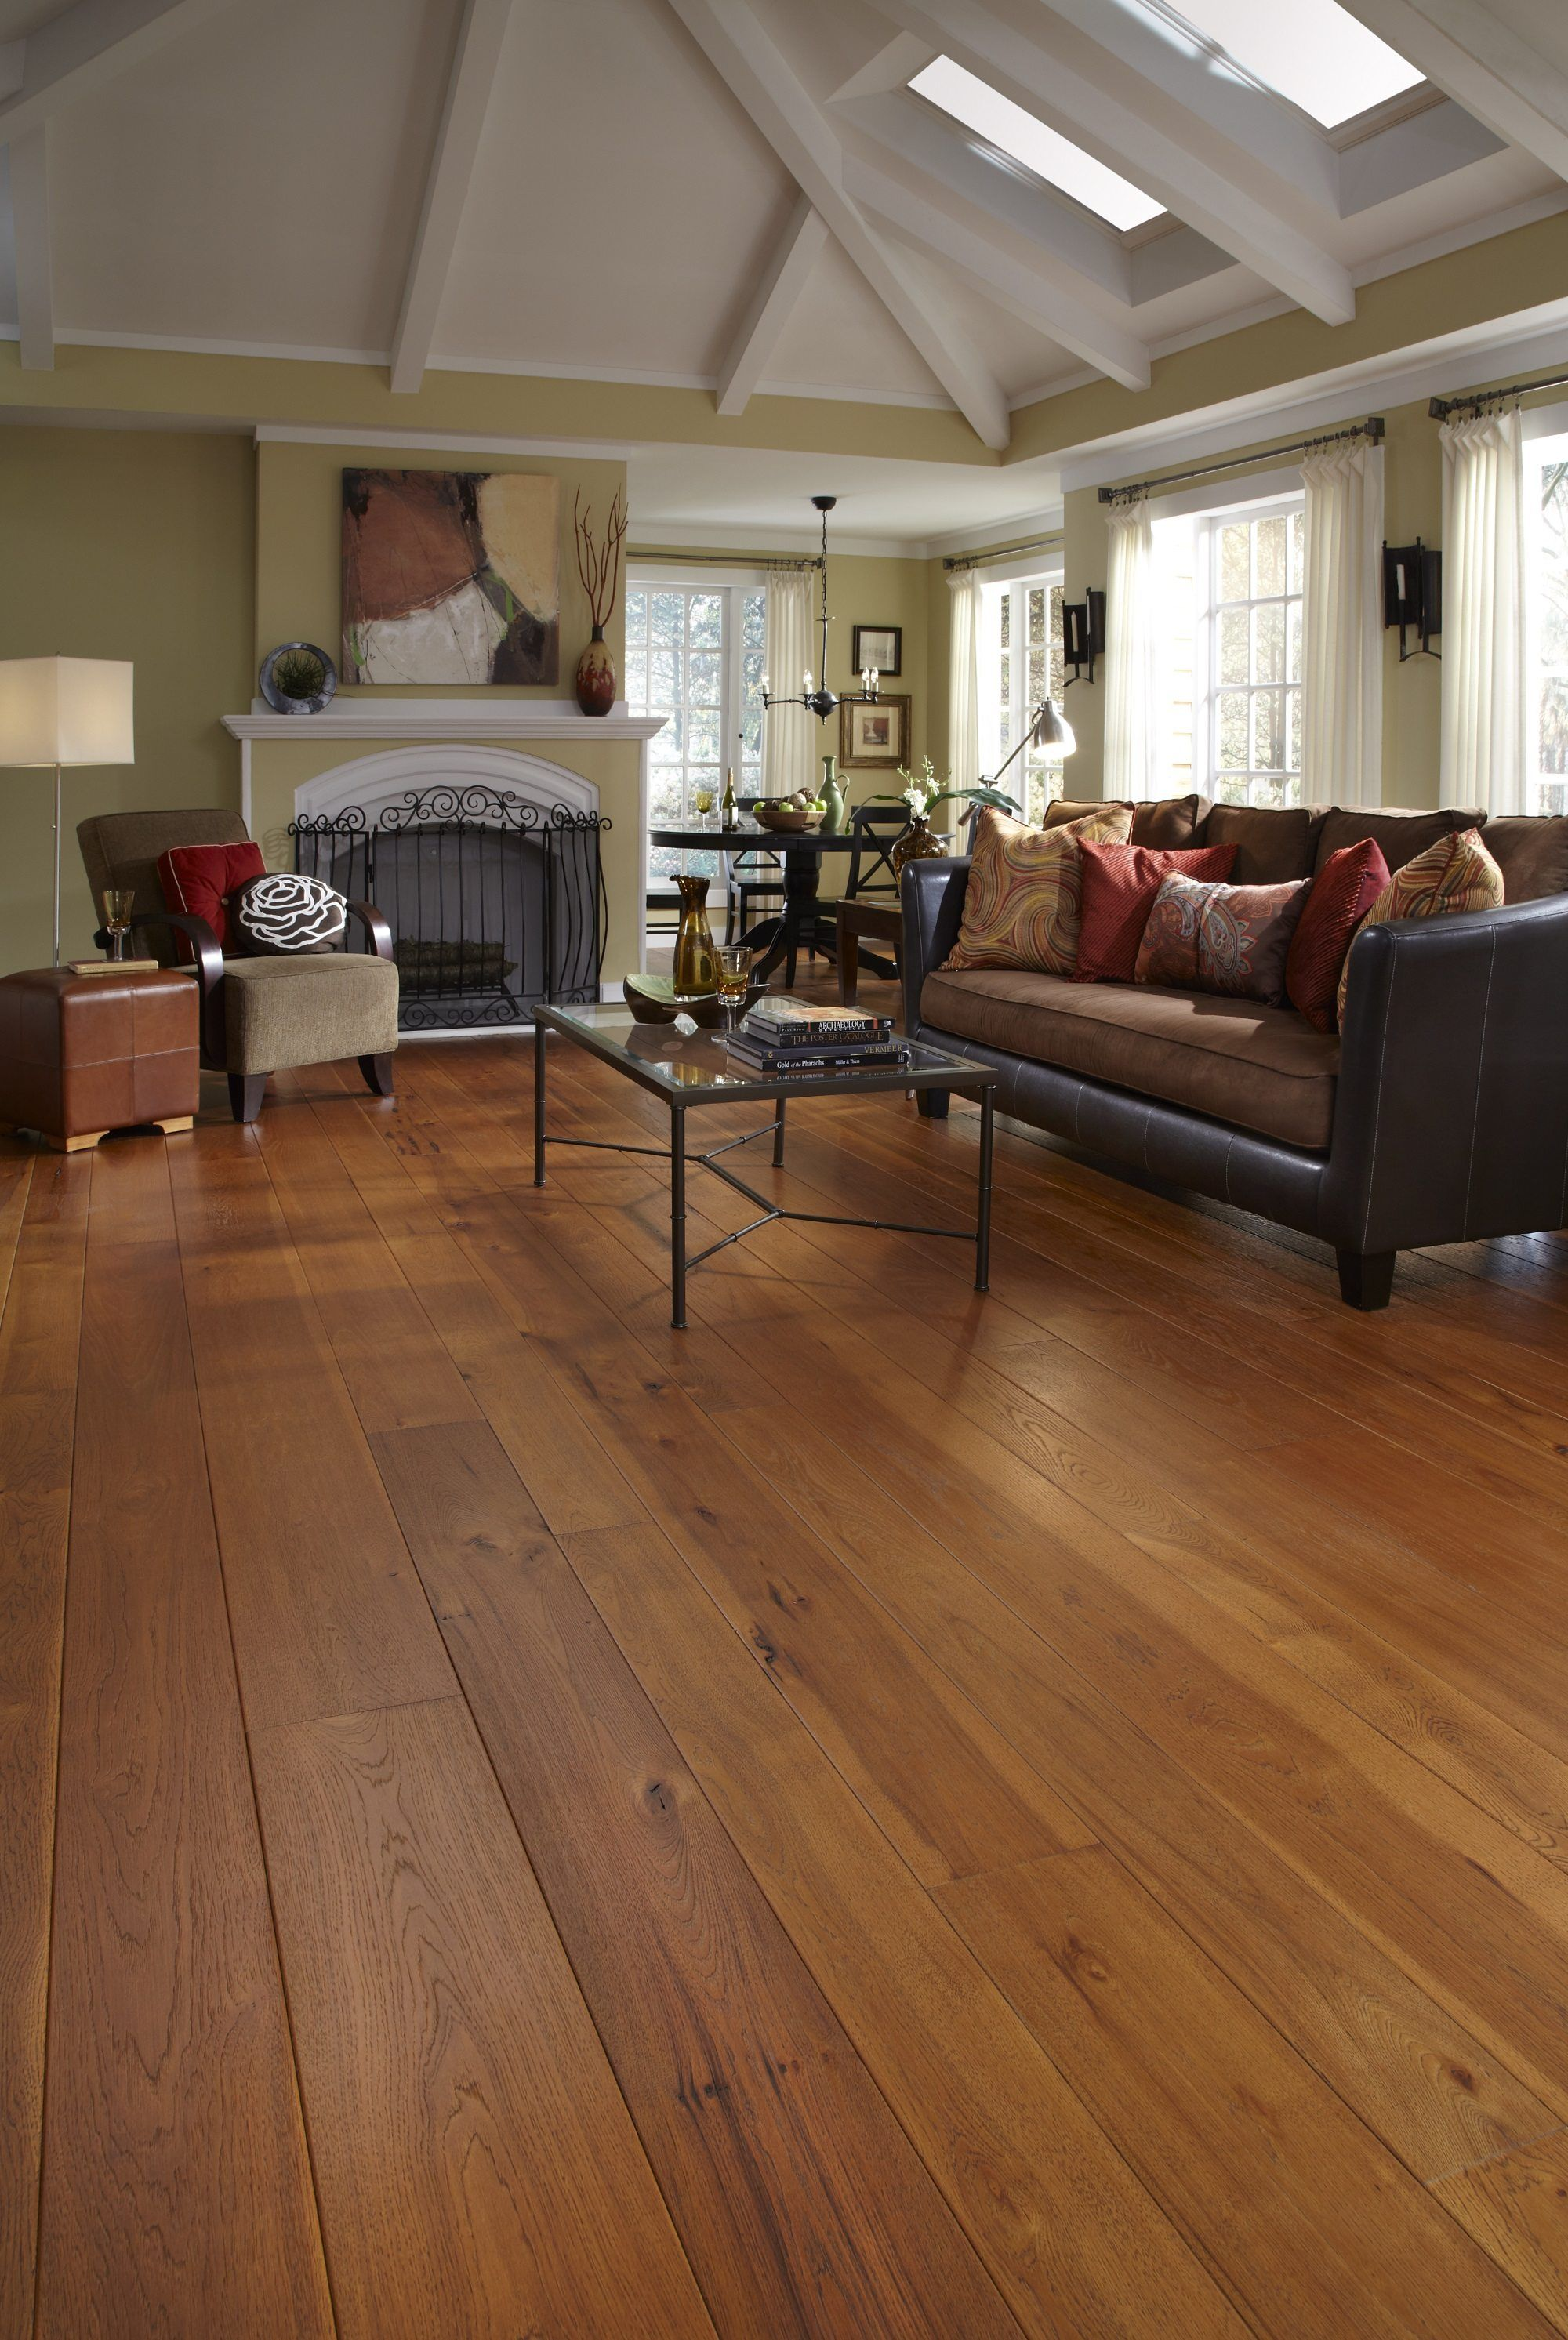 Hickory Hardwood Flooring In Living Room Carlisle Wide Plank Floors Wood Floors Wide Plank Engineered Wood Floors Wide Plank Hickory Hardwood Floors